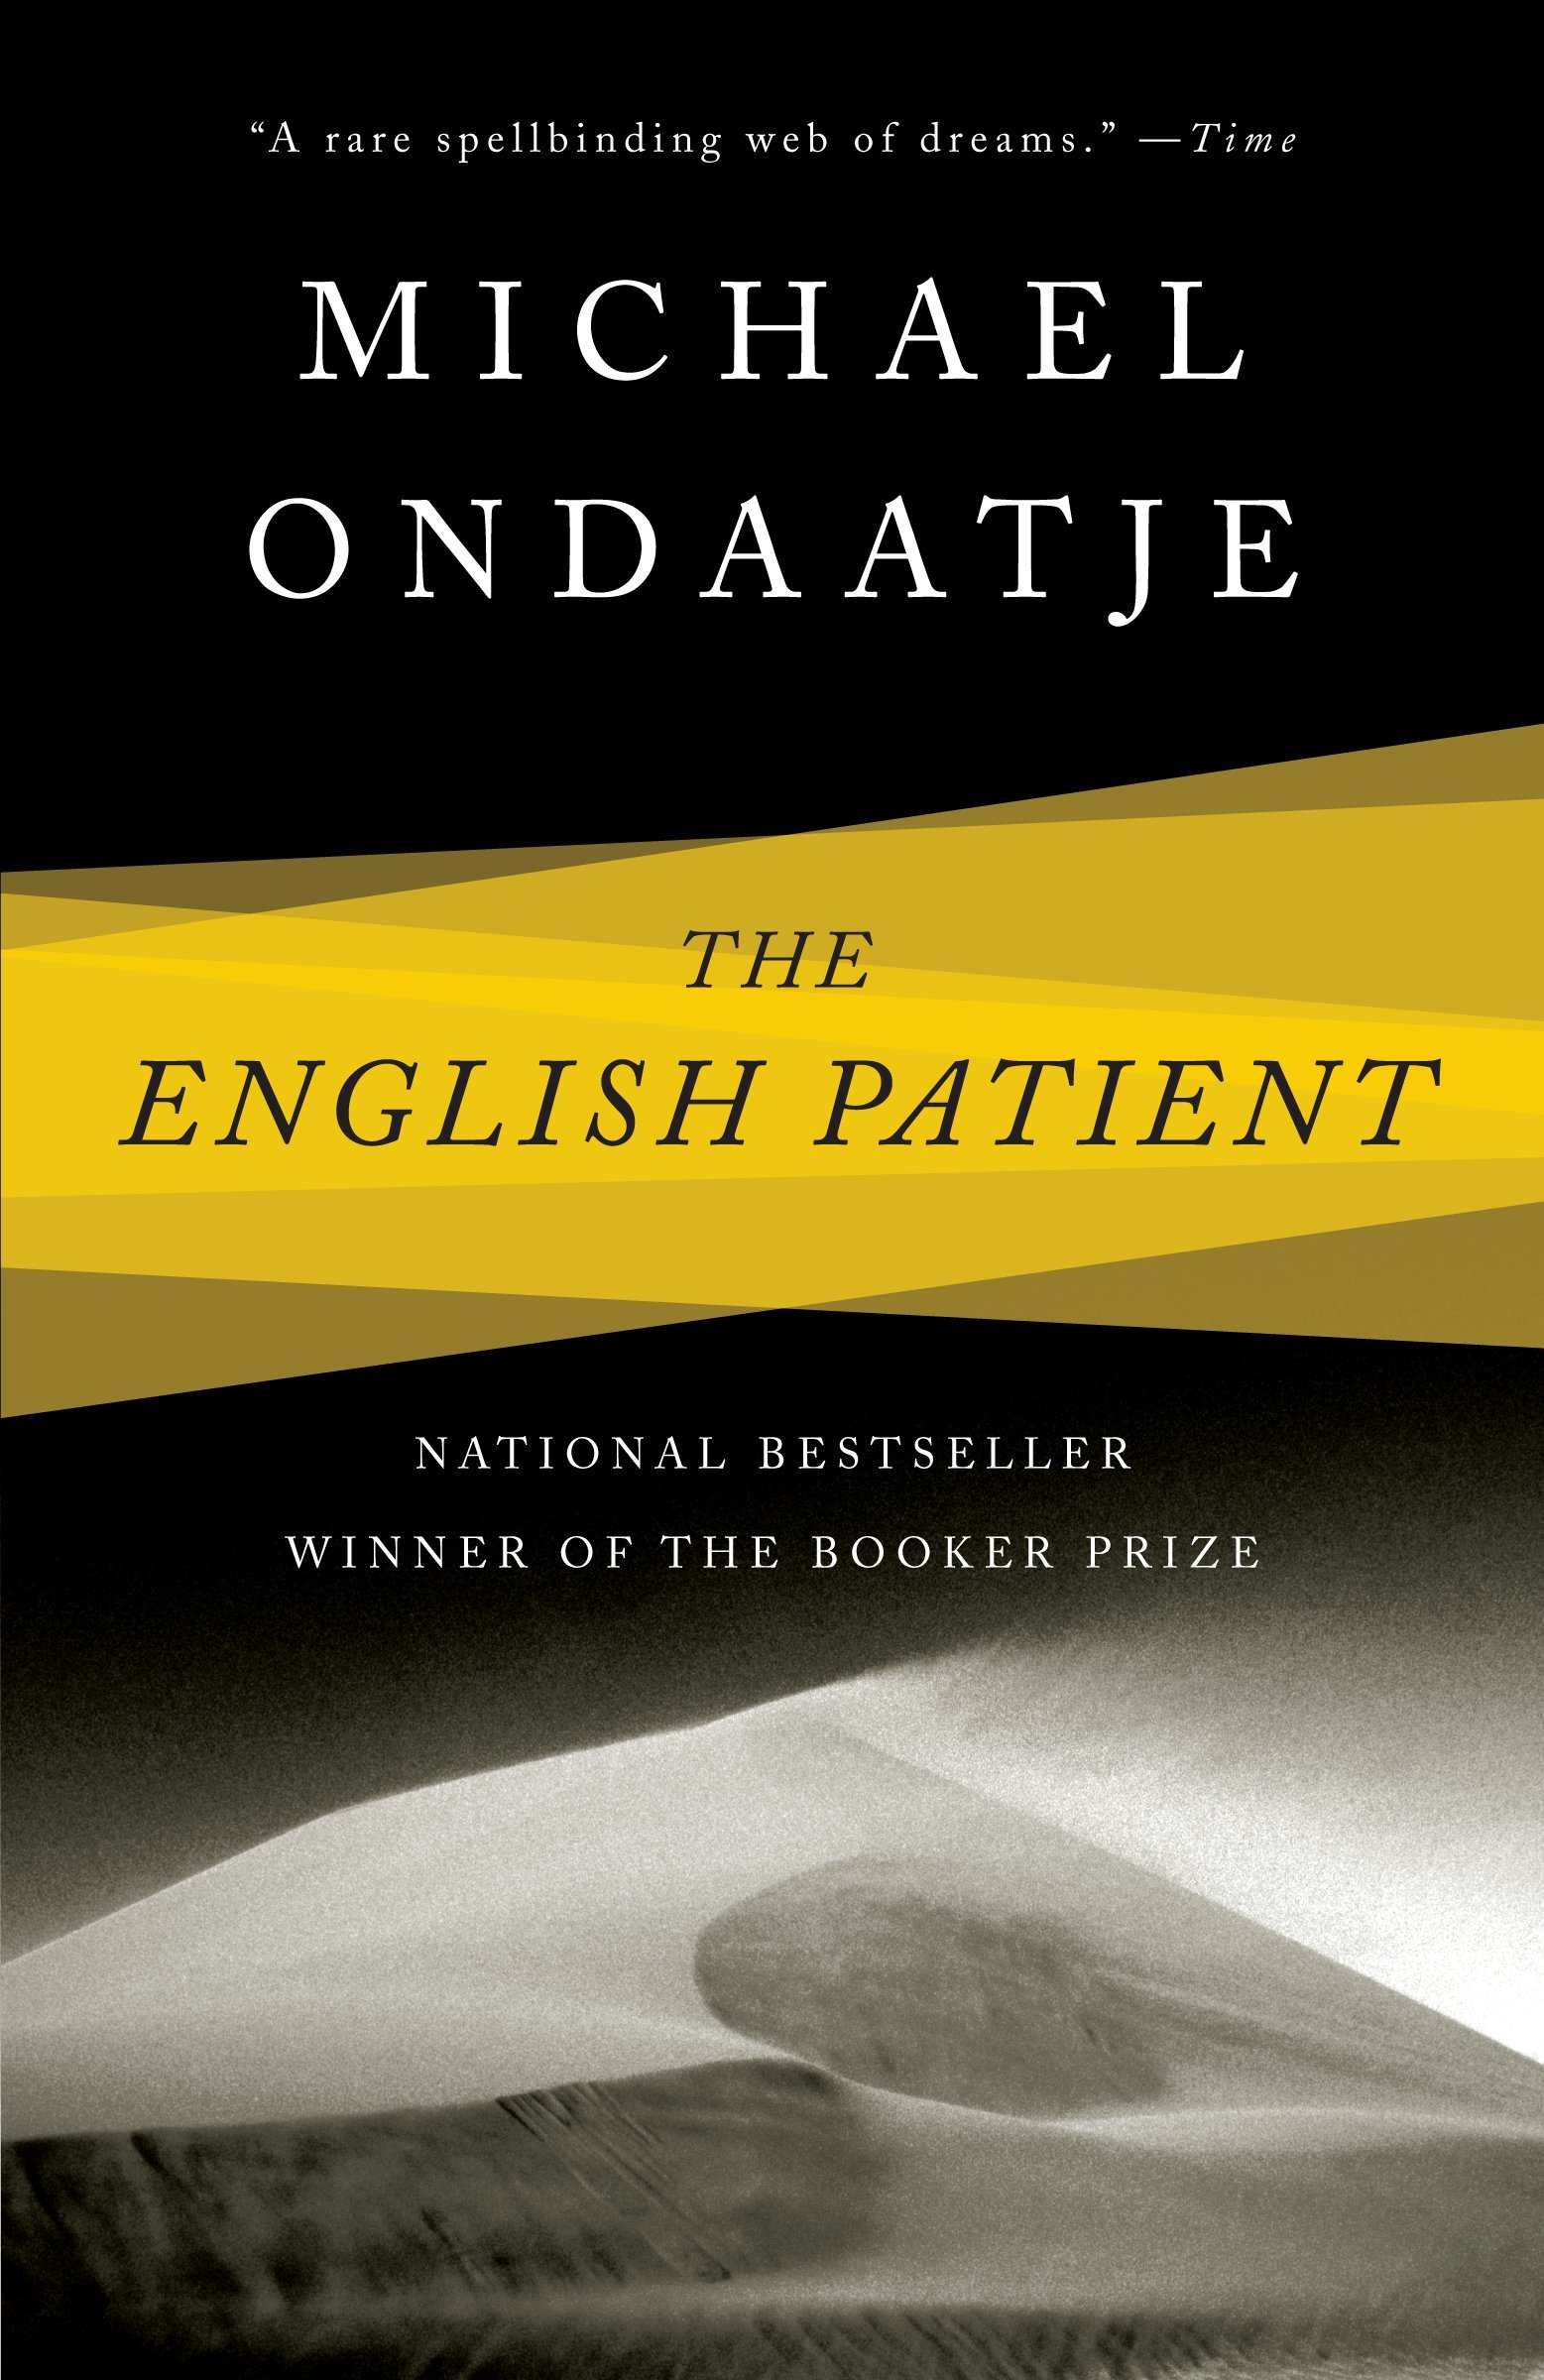 The English Patient ISBN-13 9780679745204